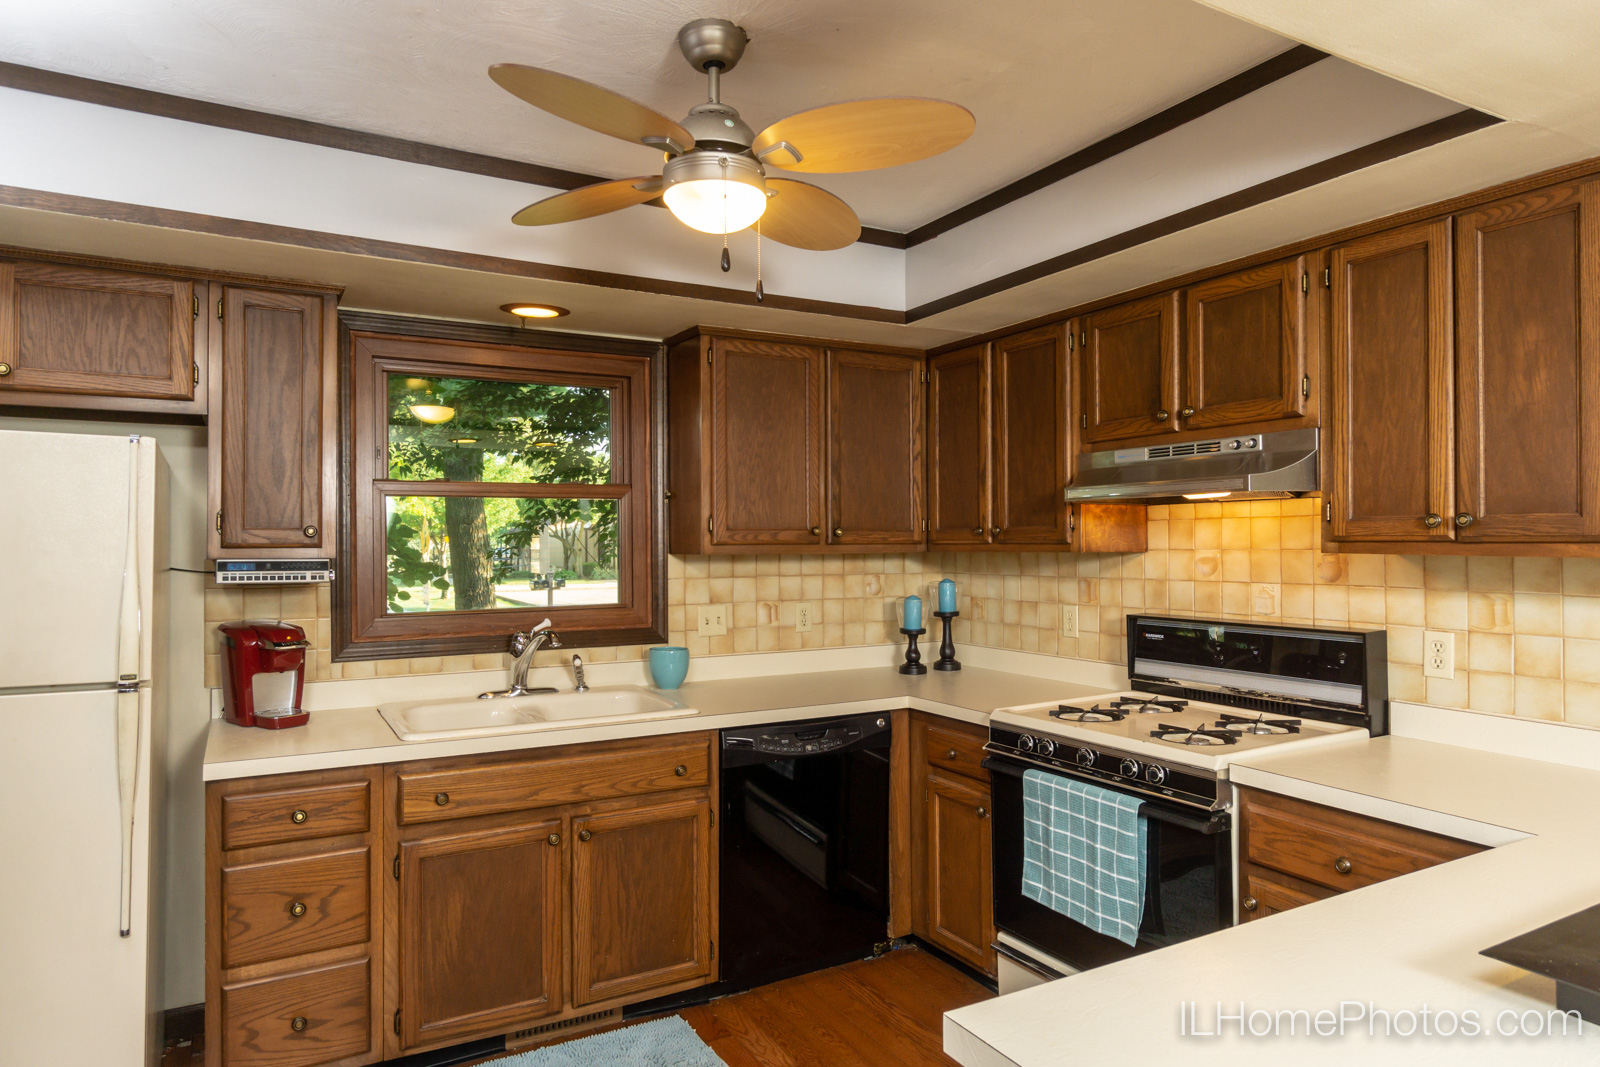 Interior kitchen photograph for real estate in Sherman, IL :: Illinois Home Photography by Michael Gowin, Lincoln, IL